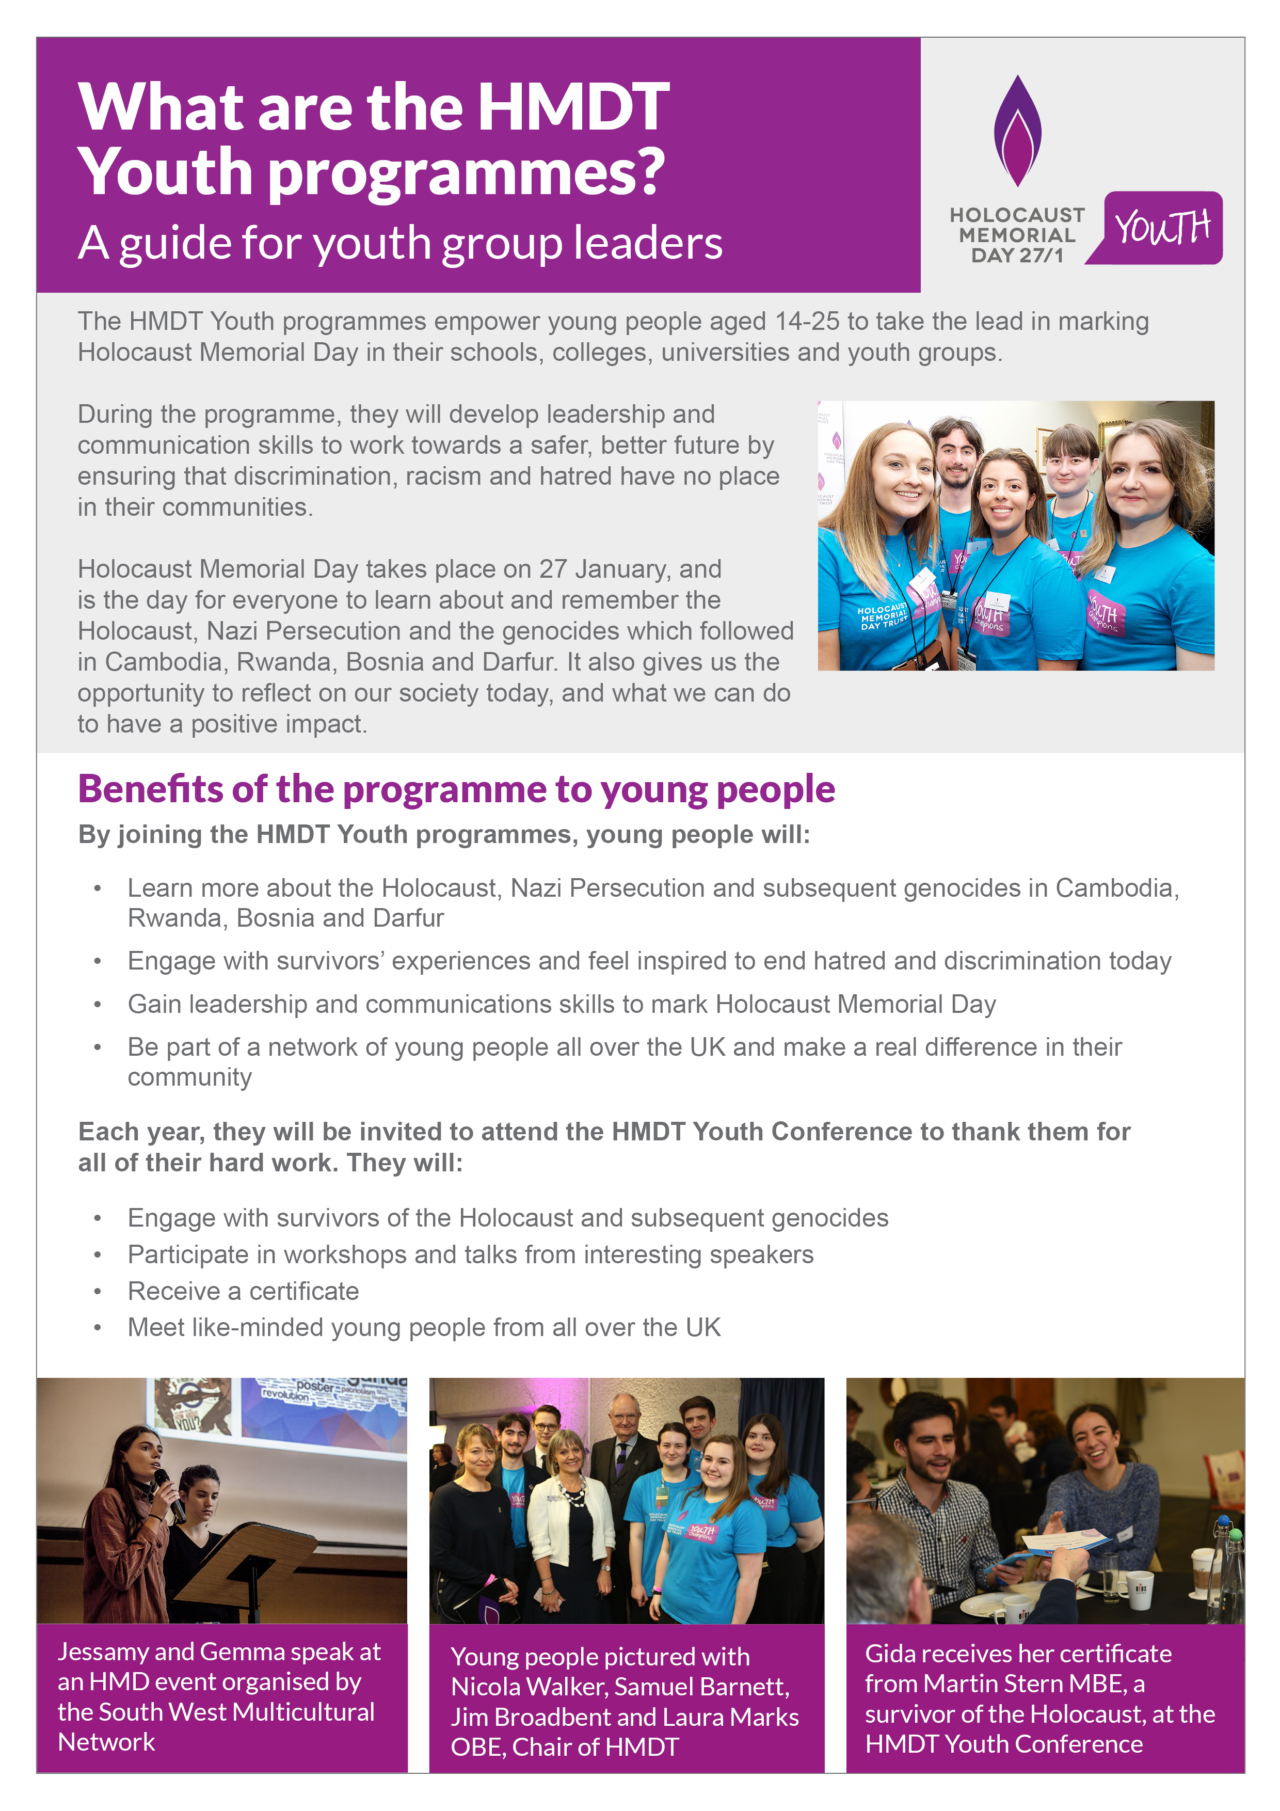 Youth leader guide - HMDT Youth programmes